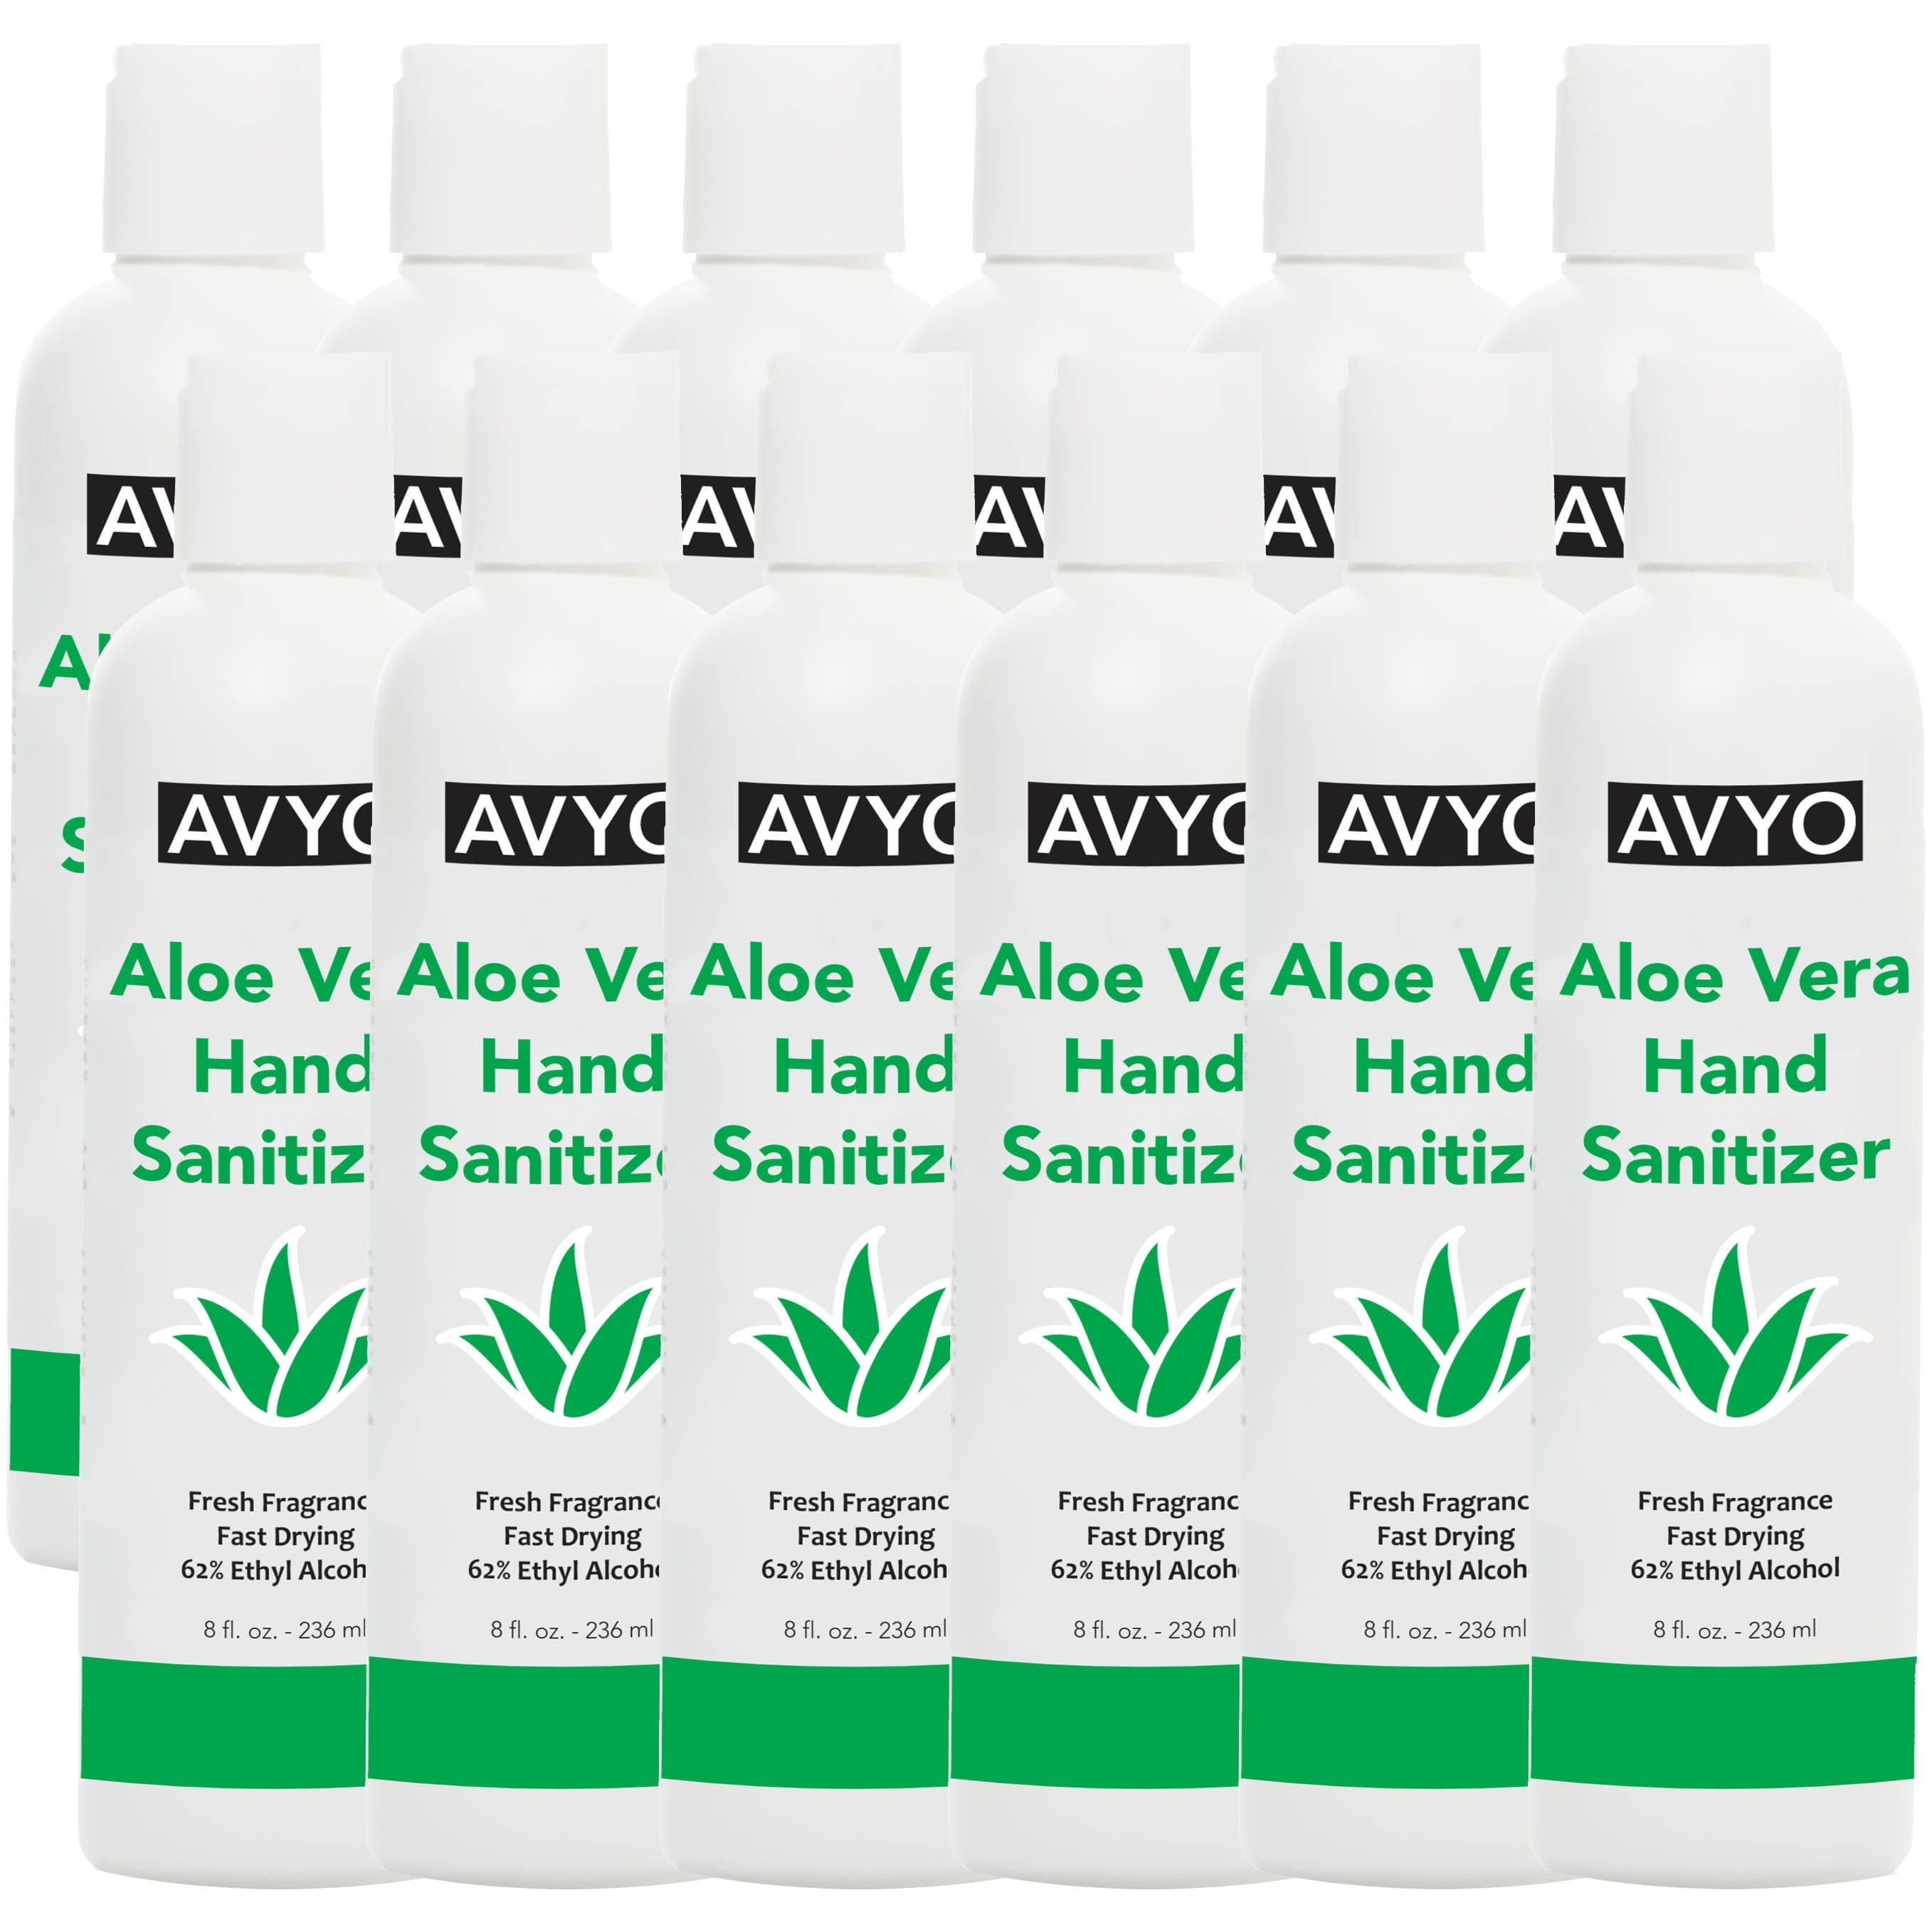 Aloe Vera Hand Sanitizer | Ethyl Alcohol 62% | Gel | Made in USA [ FDA Registered ] - SH Salons